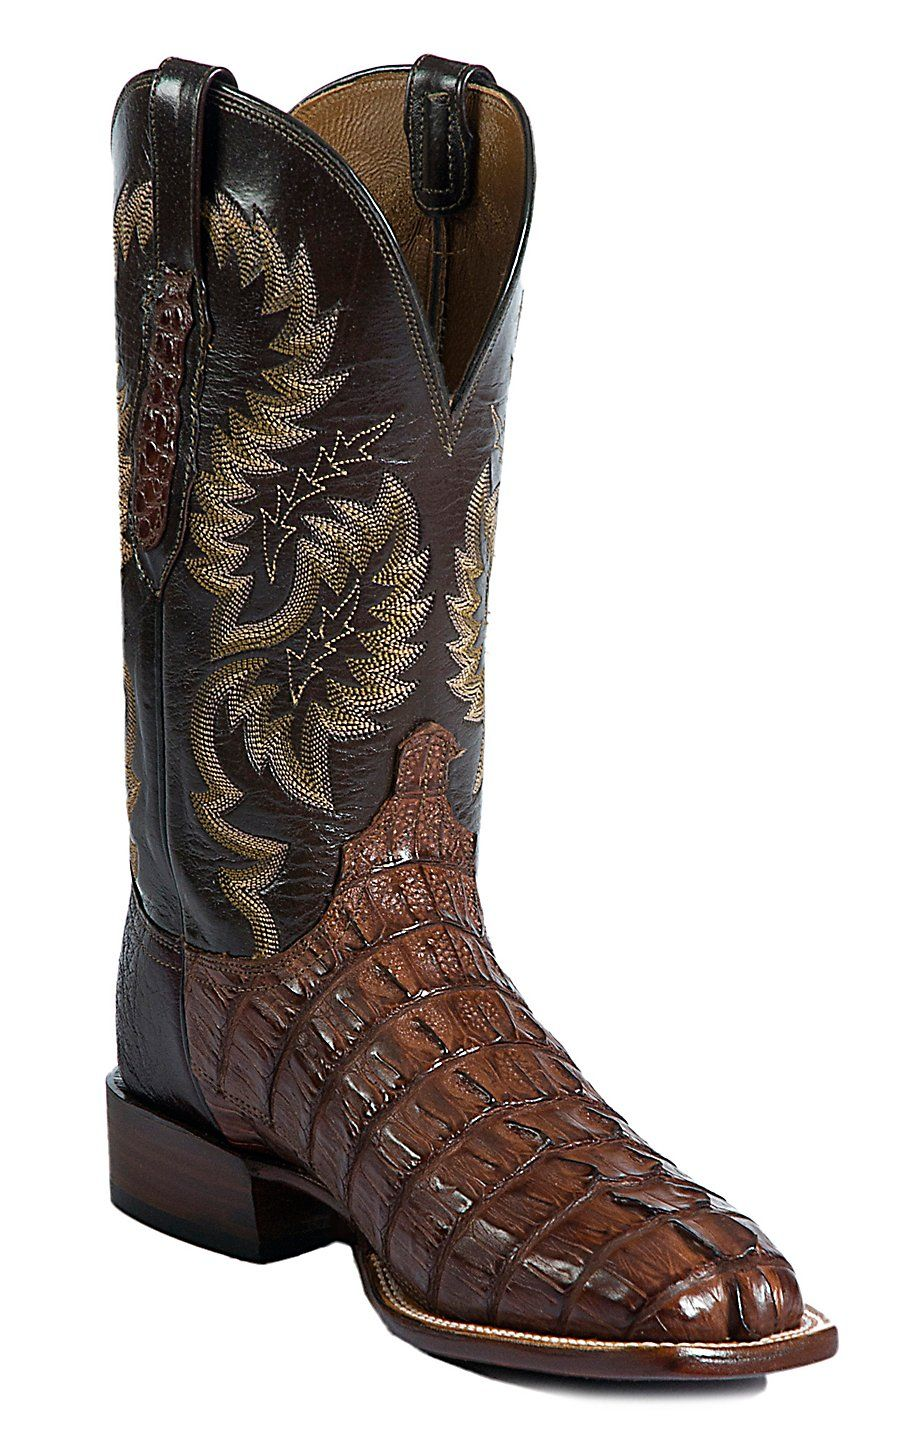 c4f9c2a94b9 Lucchese® Cowboy Collection™ Men's Cigar Giant Croc Tail Exotic ...